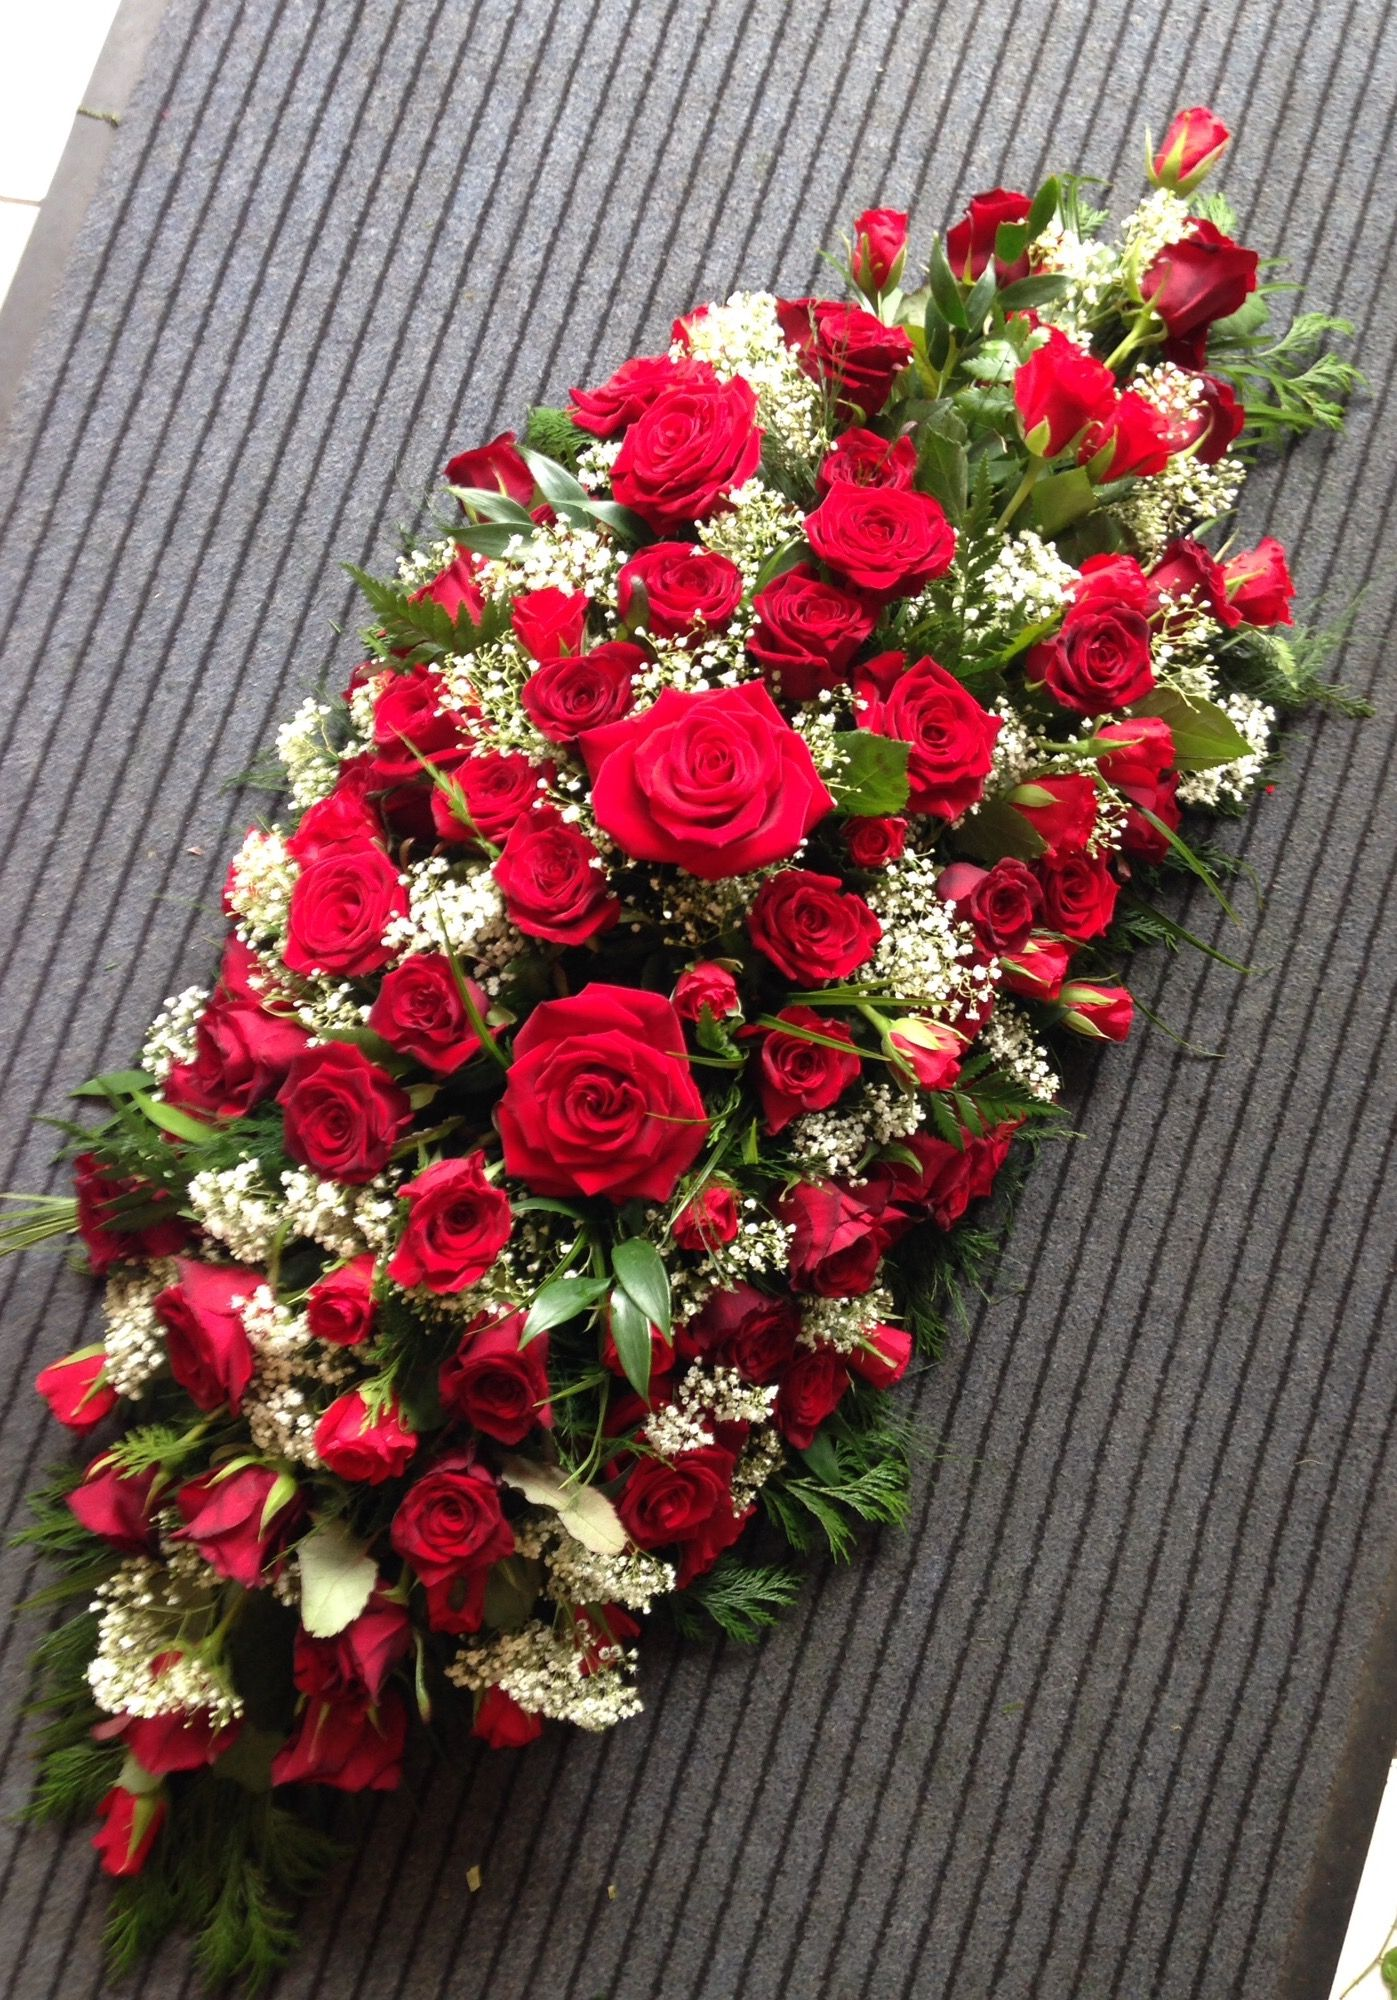 Red rose and gypsophila coffin oasis butterfliesandblooms red rose and gypsophila coffin oasis butterfliesandblooms flower wreath funeral izmirmasajfo